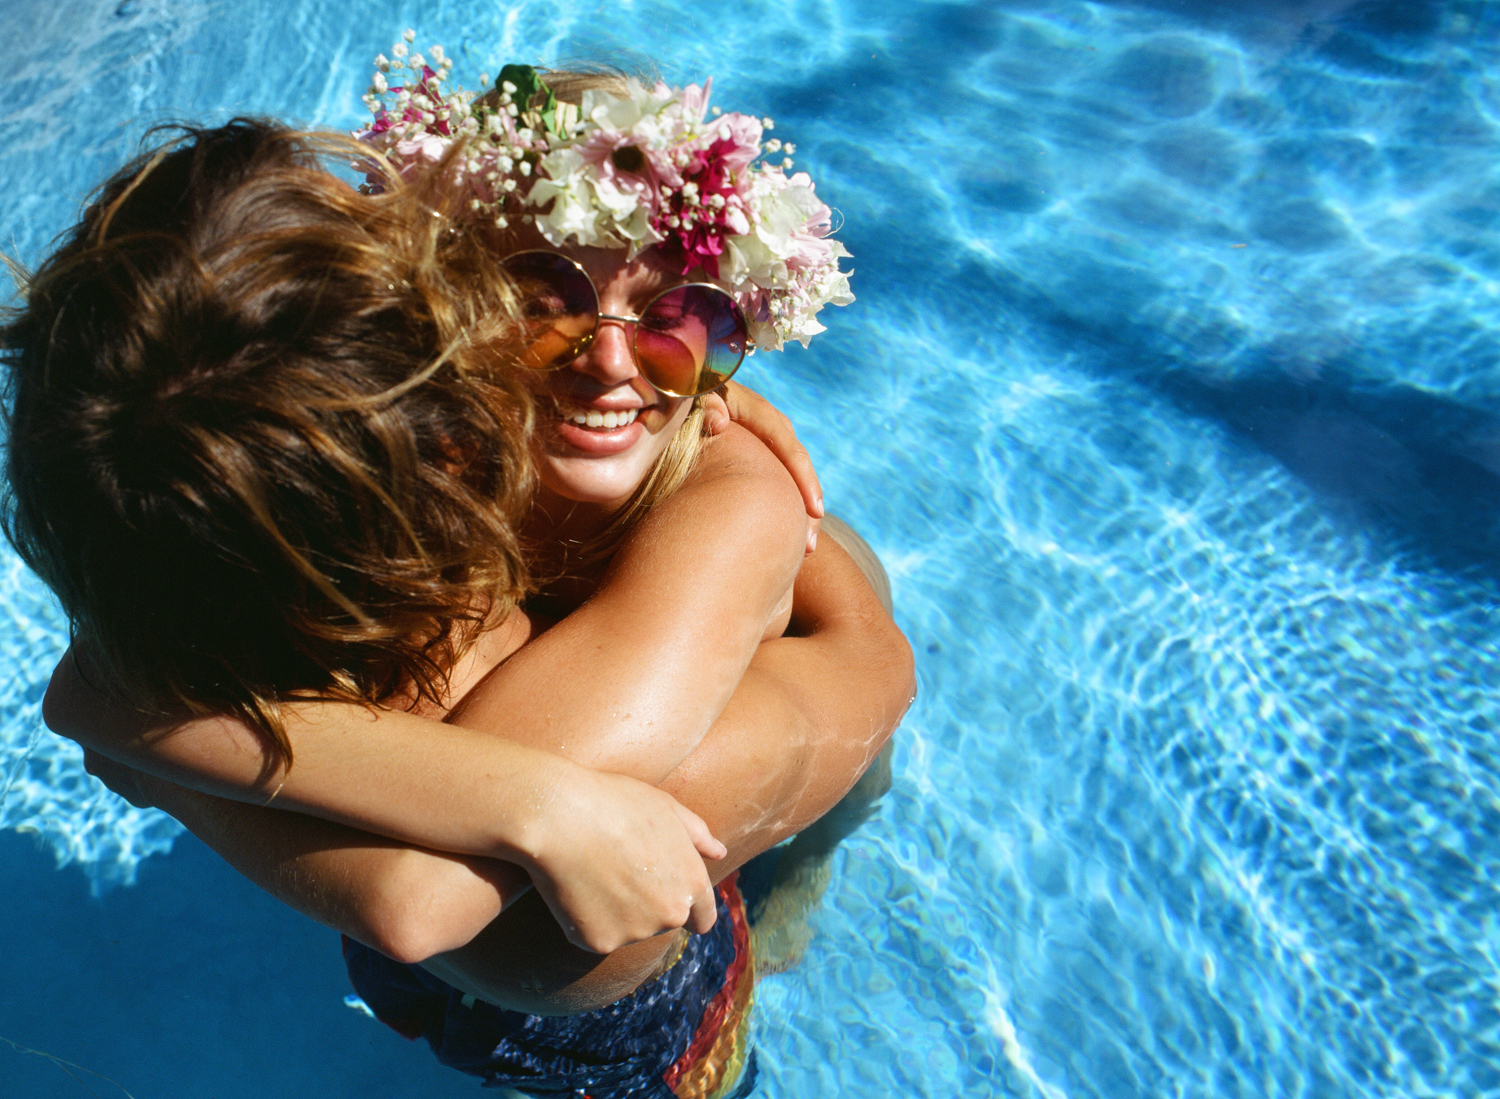 Boho couple in pool with flower headband by maui photographer wendy laurel